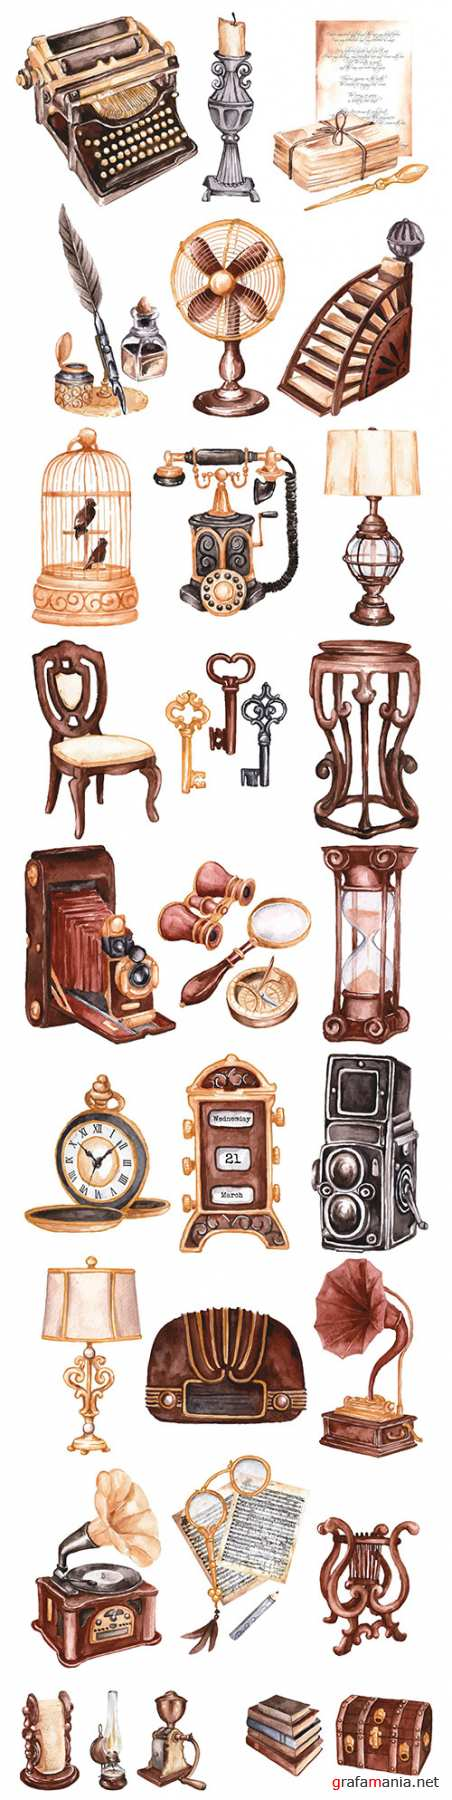 Watercolor antique market design collection illustration